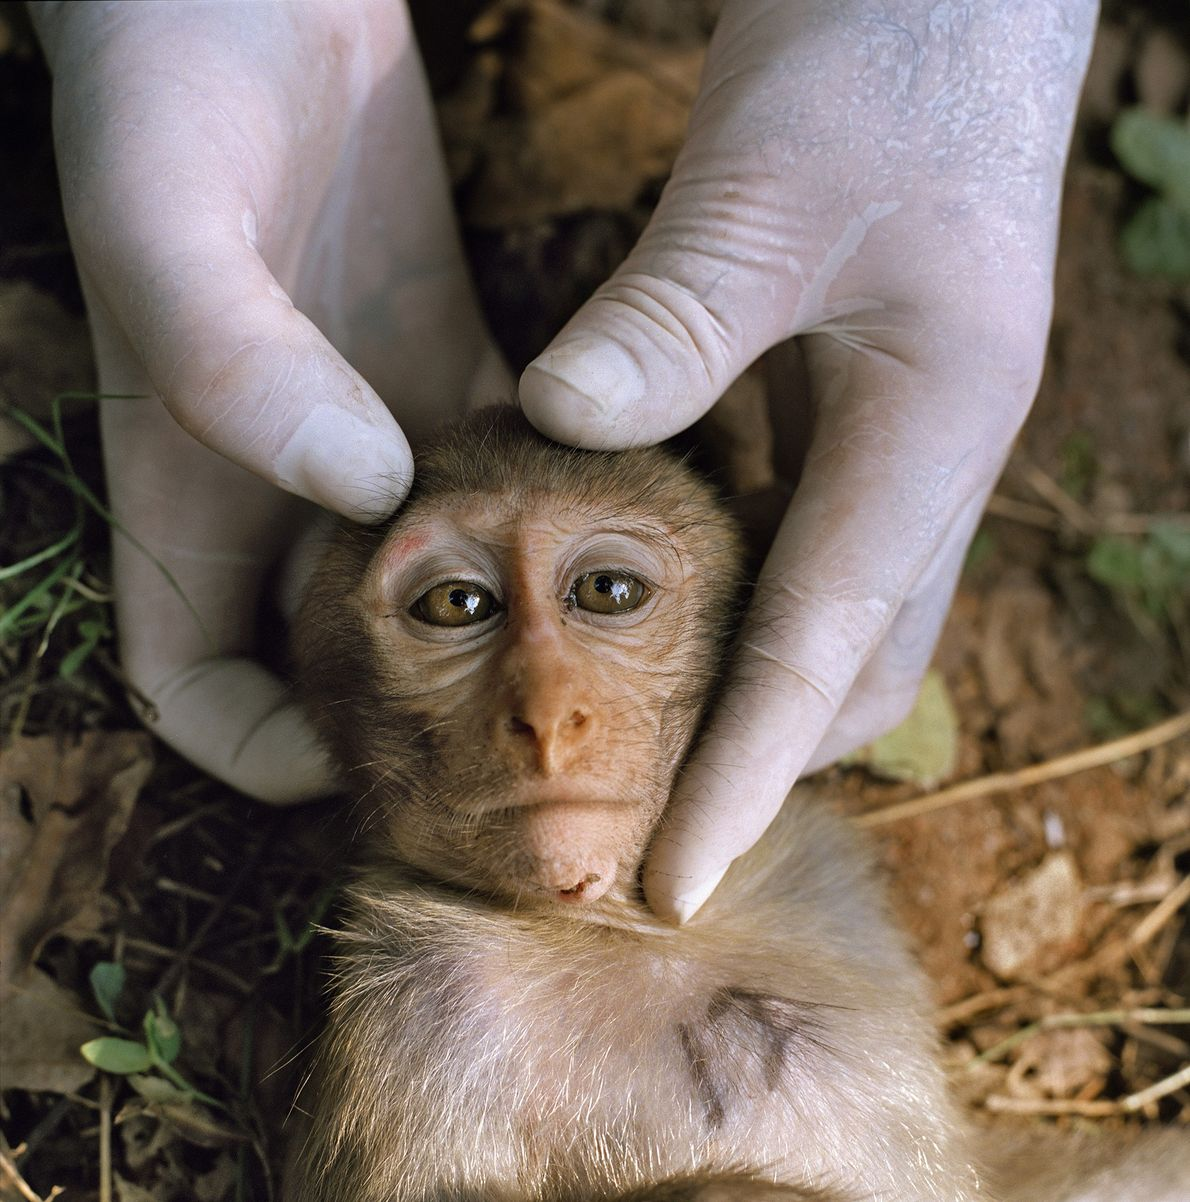 A sedated juvenile rhesus macaque is handled by a researcher in Dhamrai, Bangladesh.